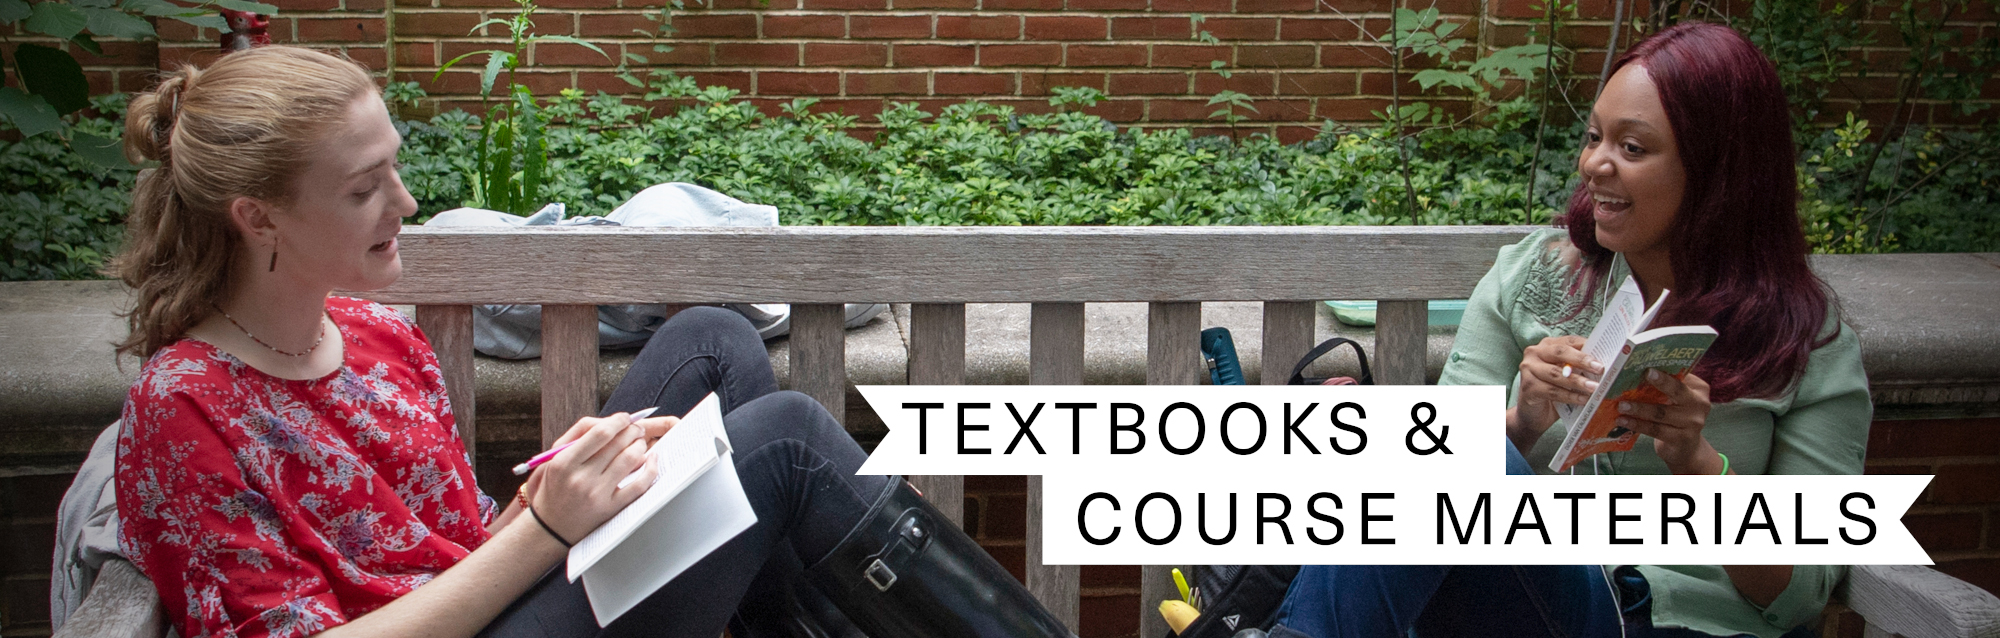 Textbooks and Course Materials